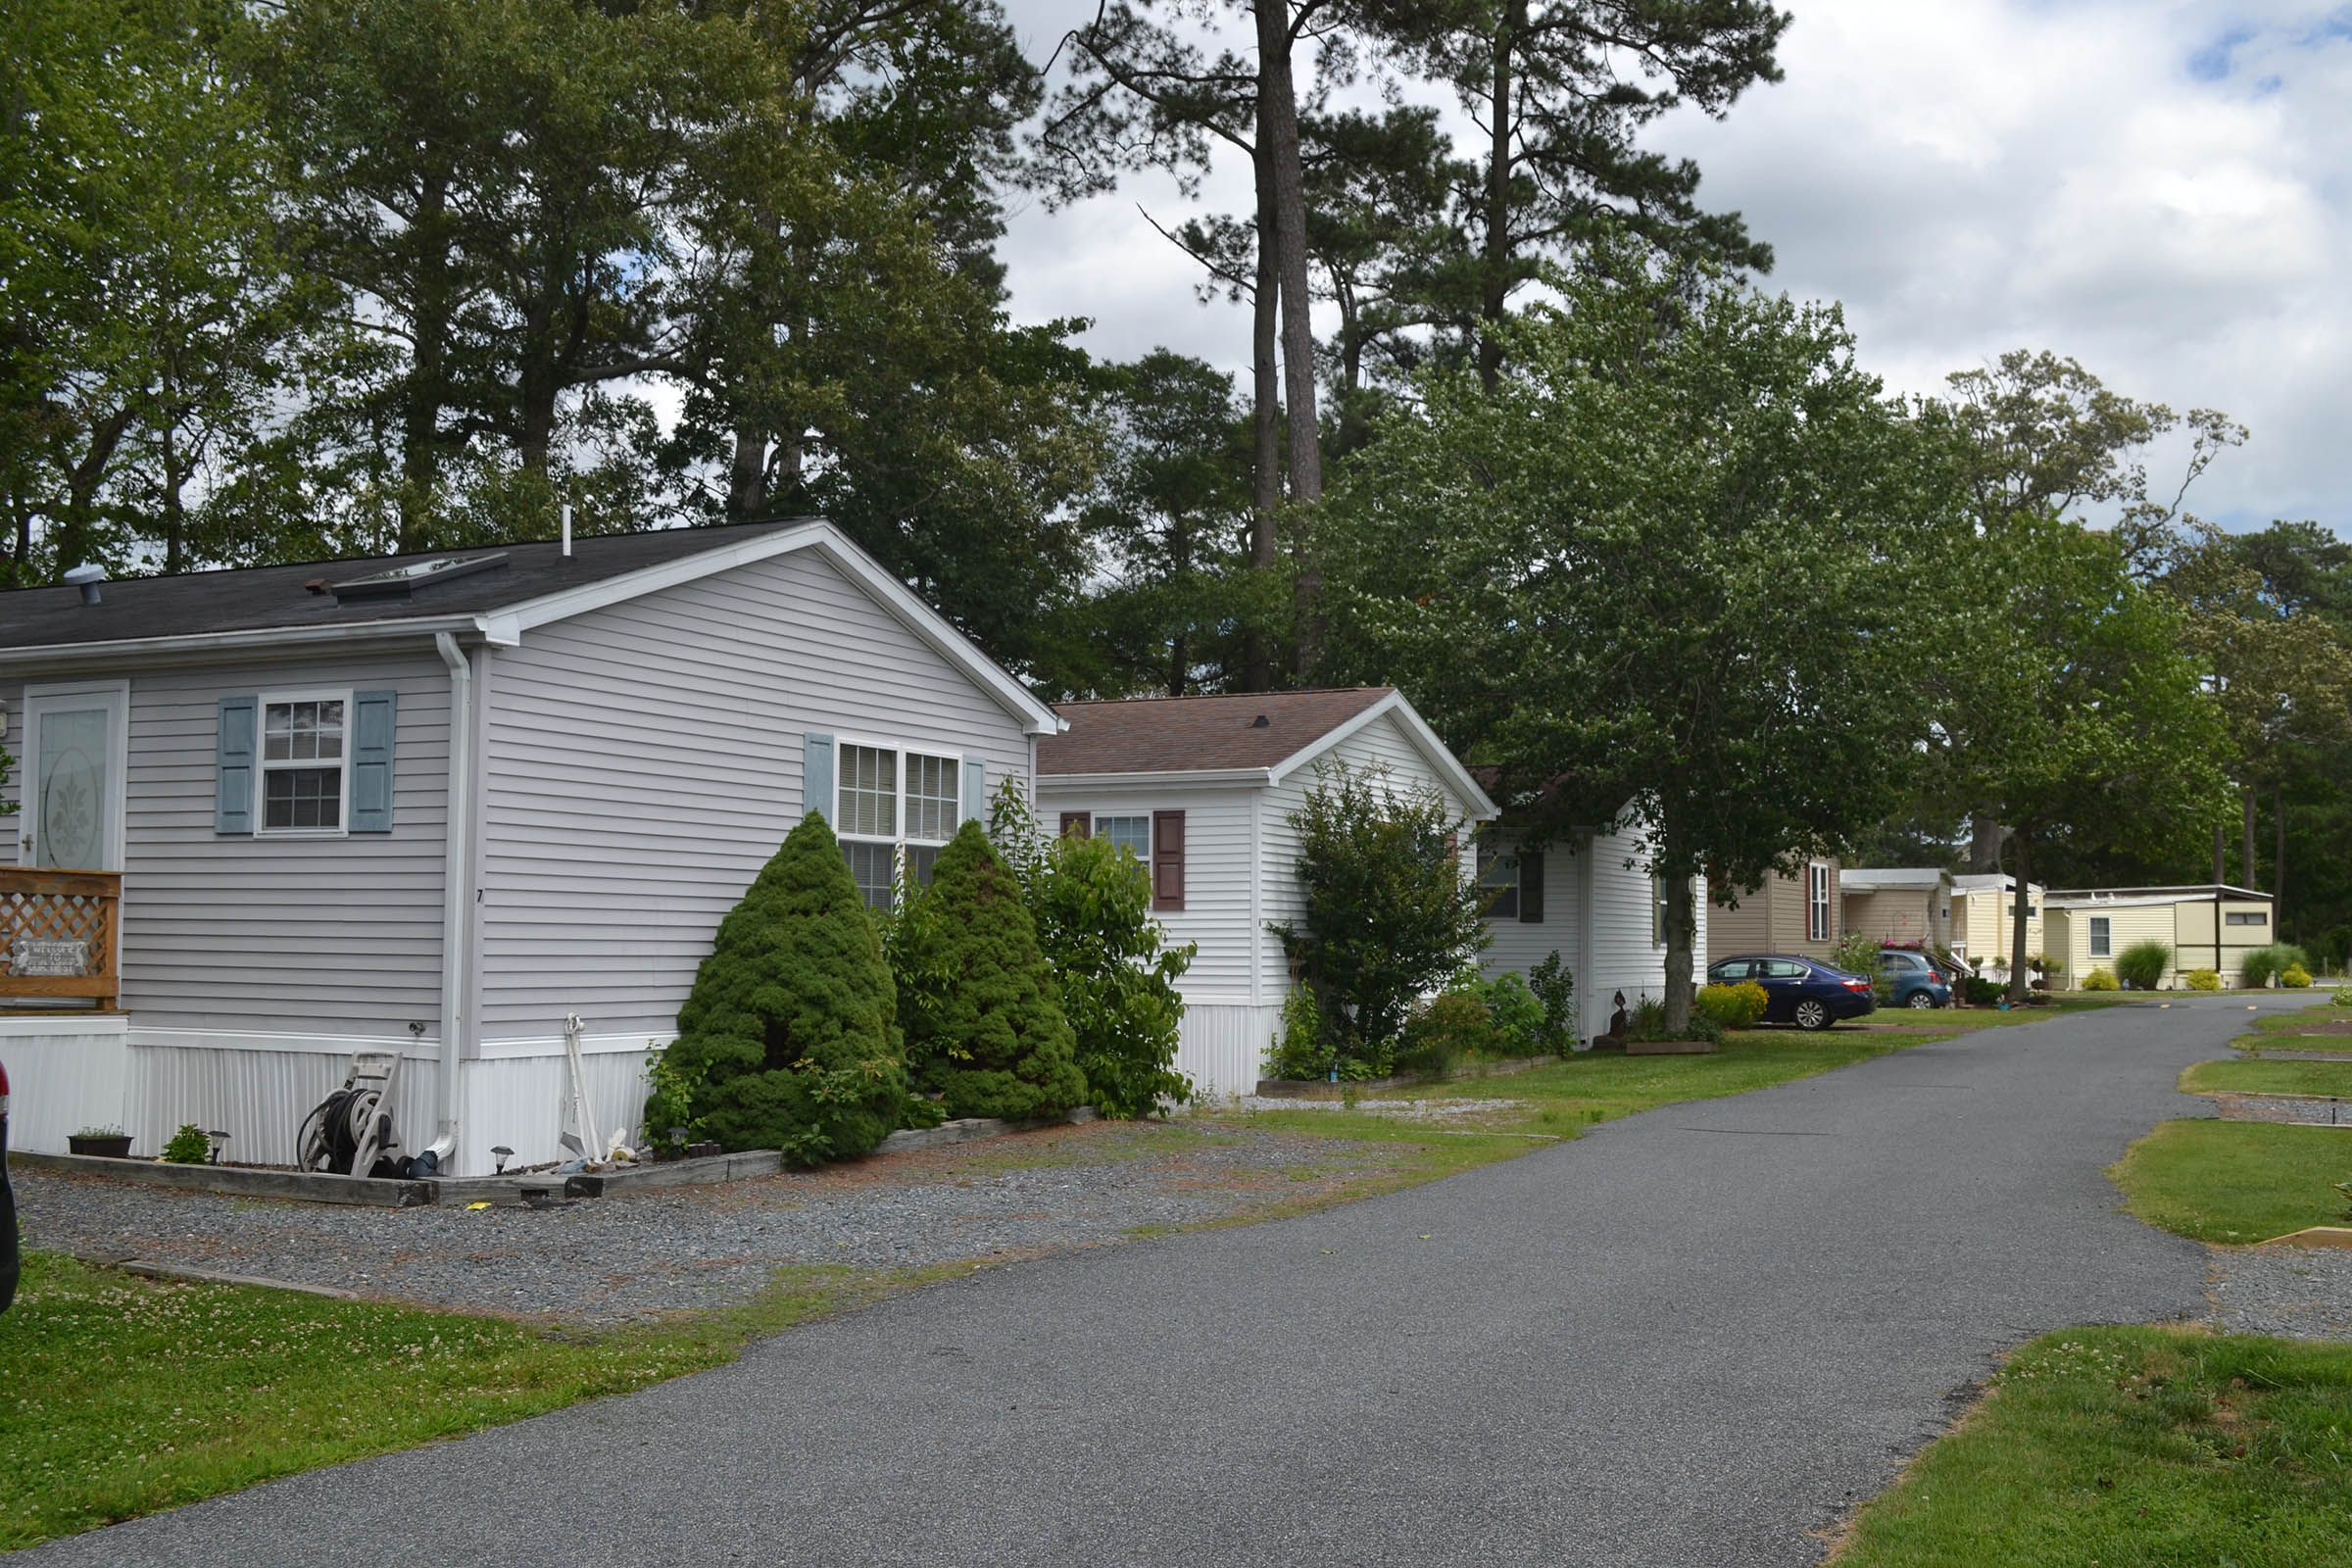 09/10/2019 | Planning Comm  Opposes Year-Round Mobile Home